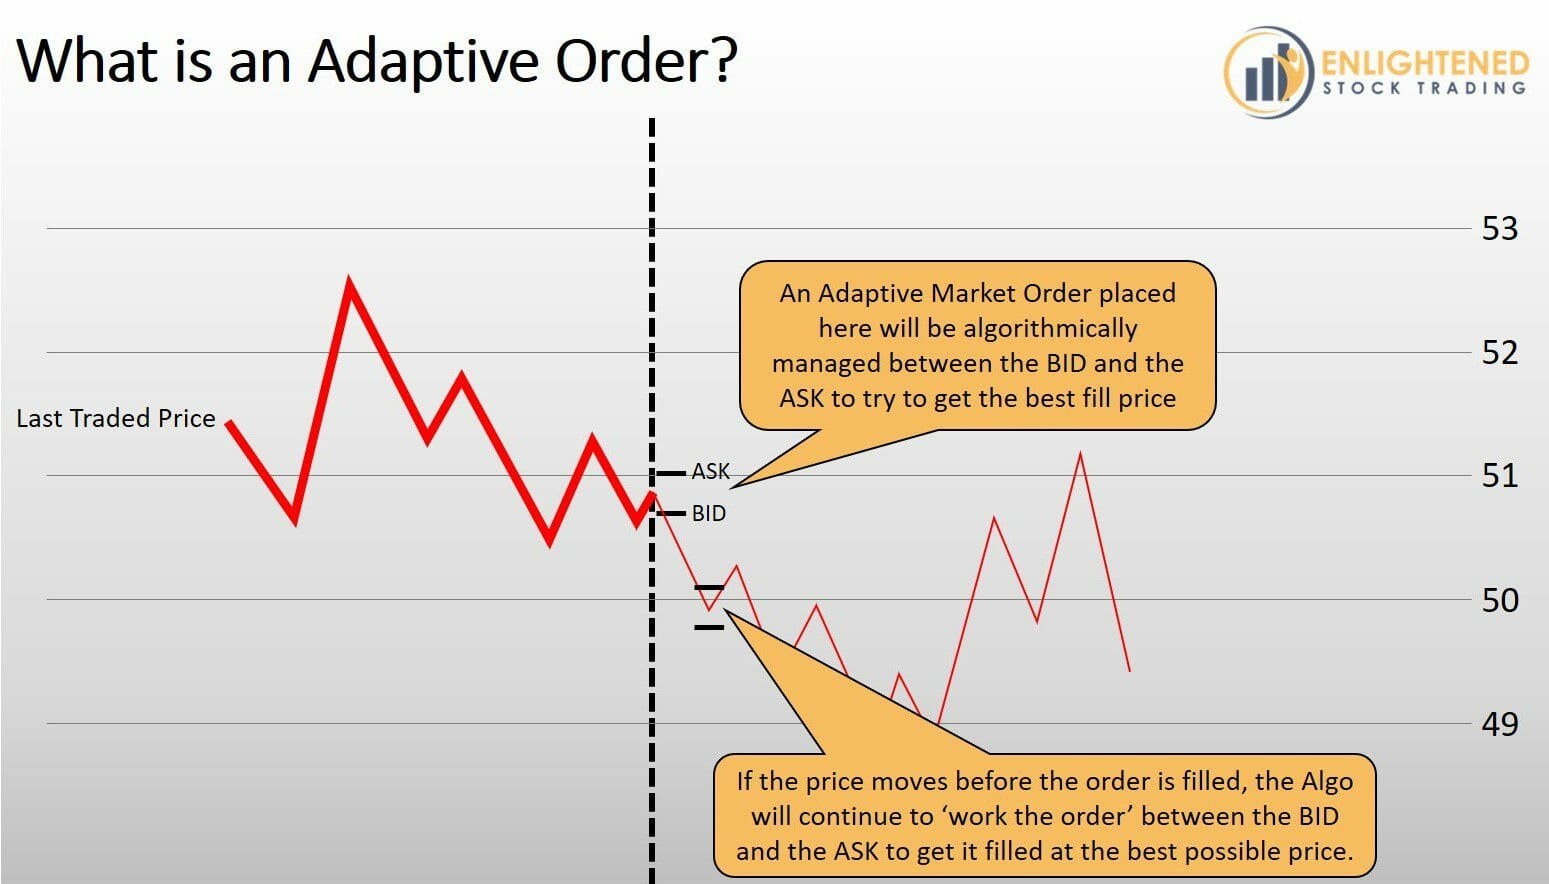 Stock Trading Order Types - What is an Adaptive Order Type